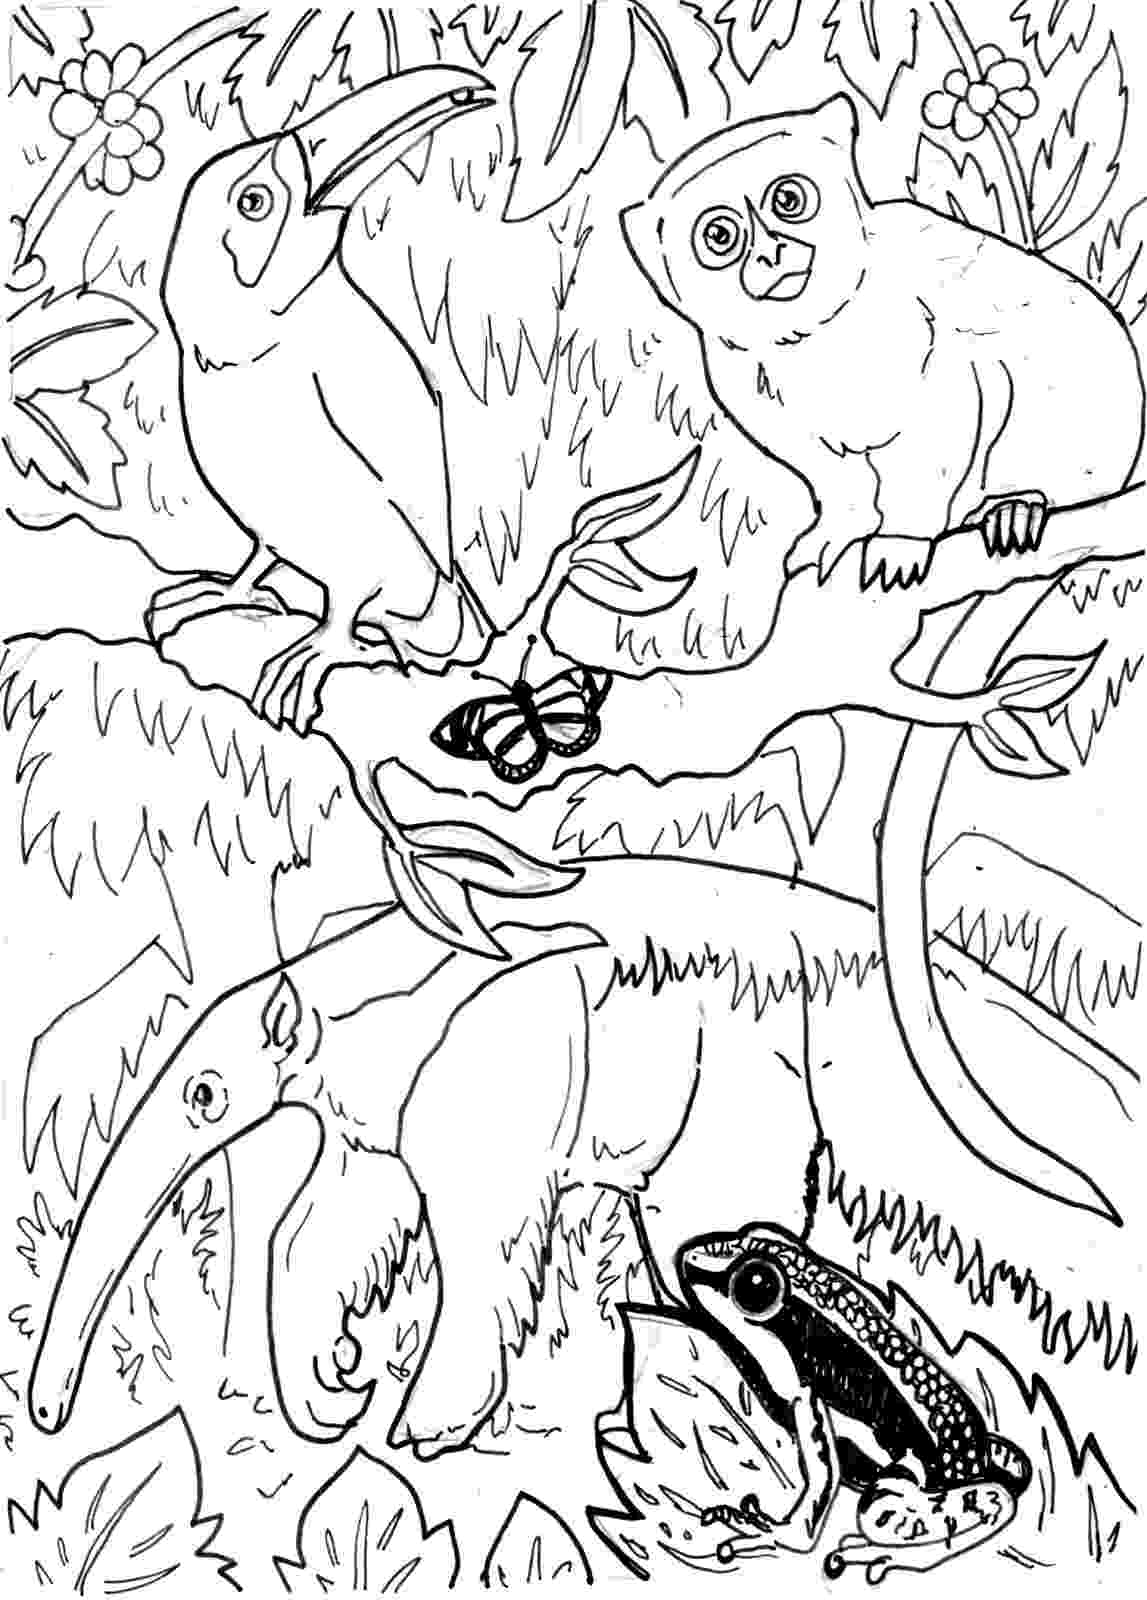 rainforest animals coloring book the daily art of lemurkat colouring pages book coloring rainforest animals